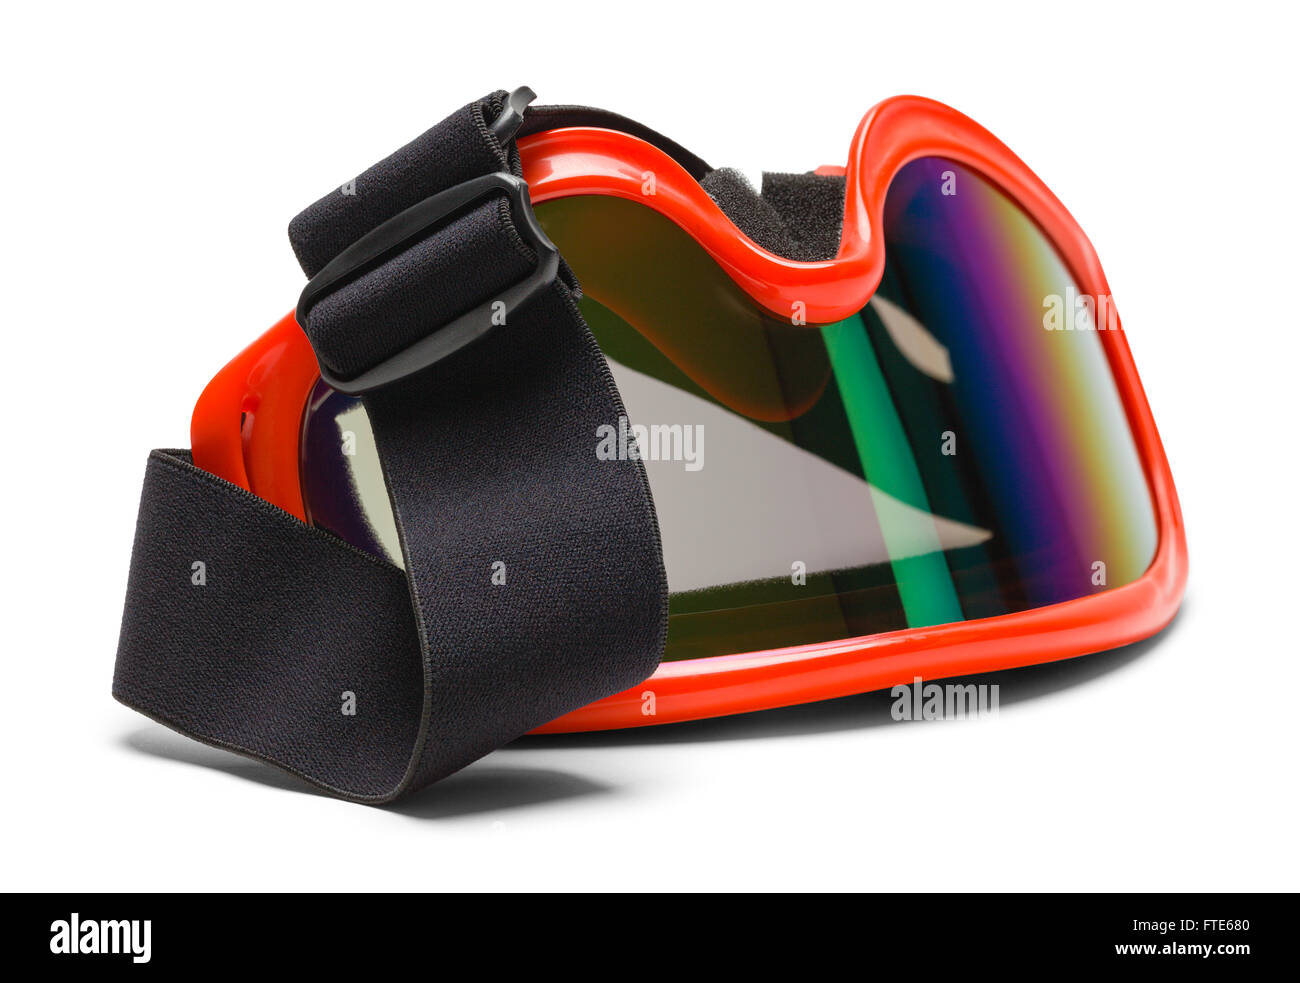 Red Goggles Upside Down with Draped Strap Isolated on White Background. - Stock Image